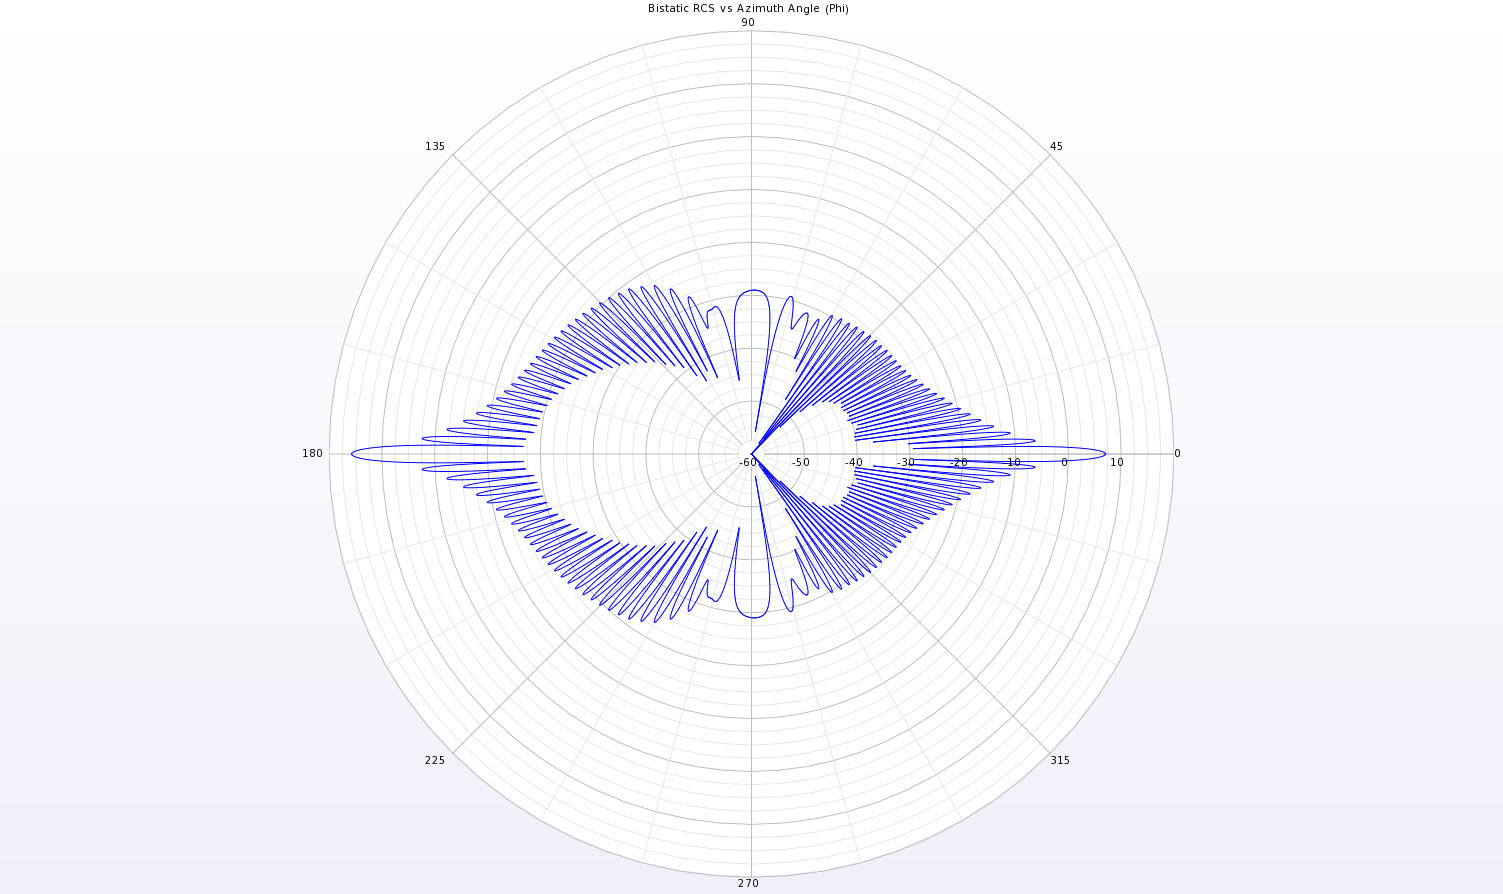 Figure 4  A full polar plot in the XY plane of the bistatic scattering pattern for the conducting cylinder.